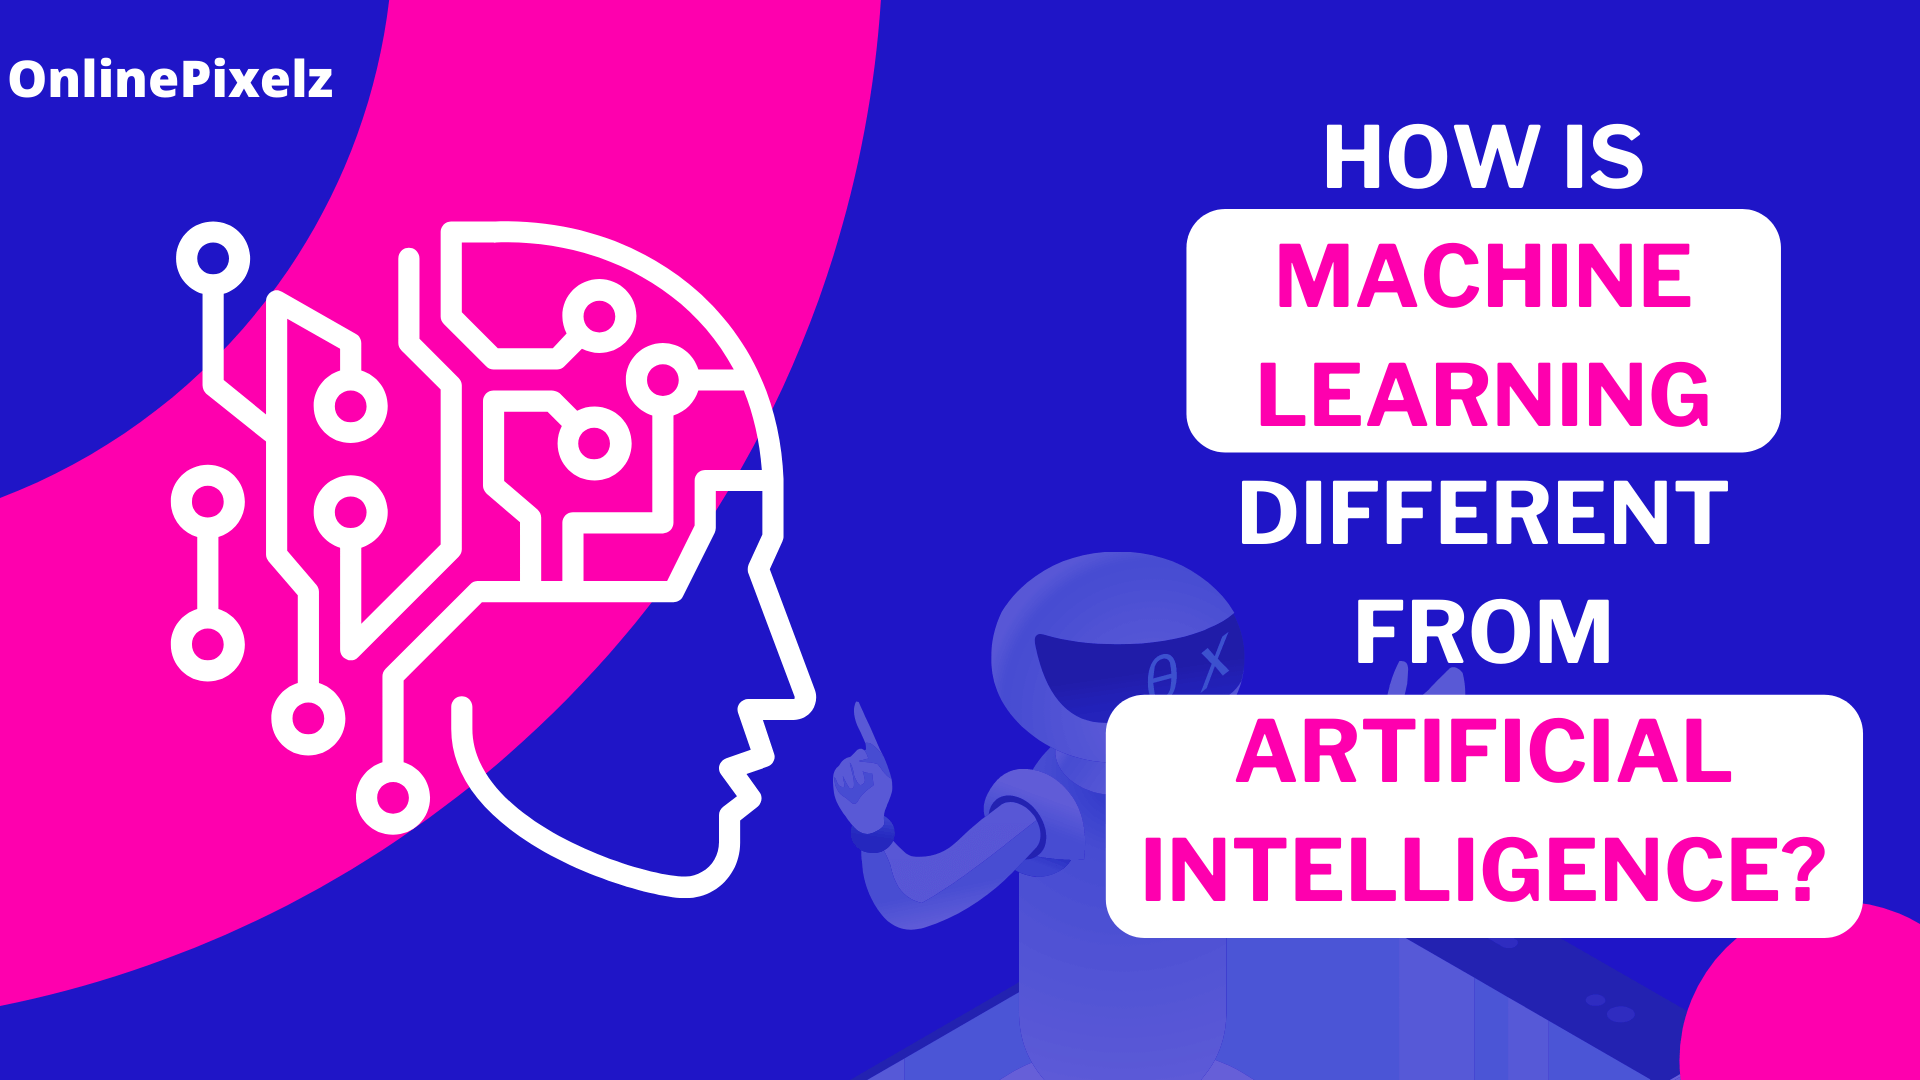 How Is Machine Learning Different From Artificial Intelligence